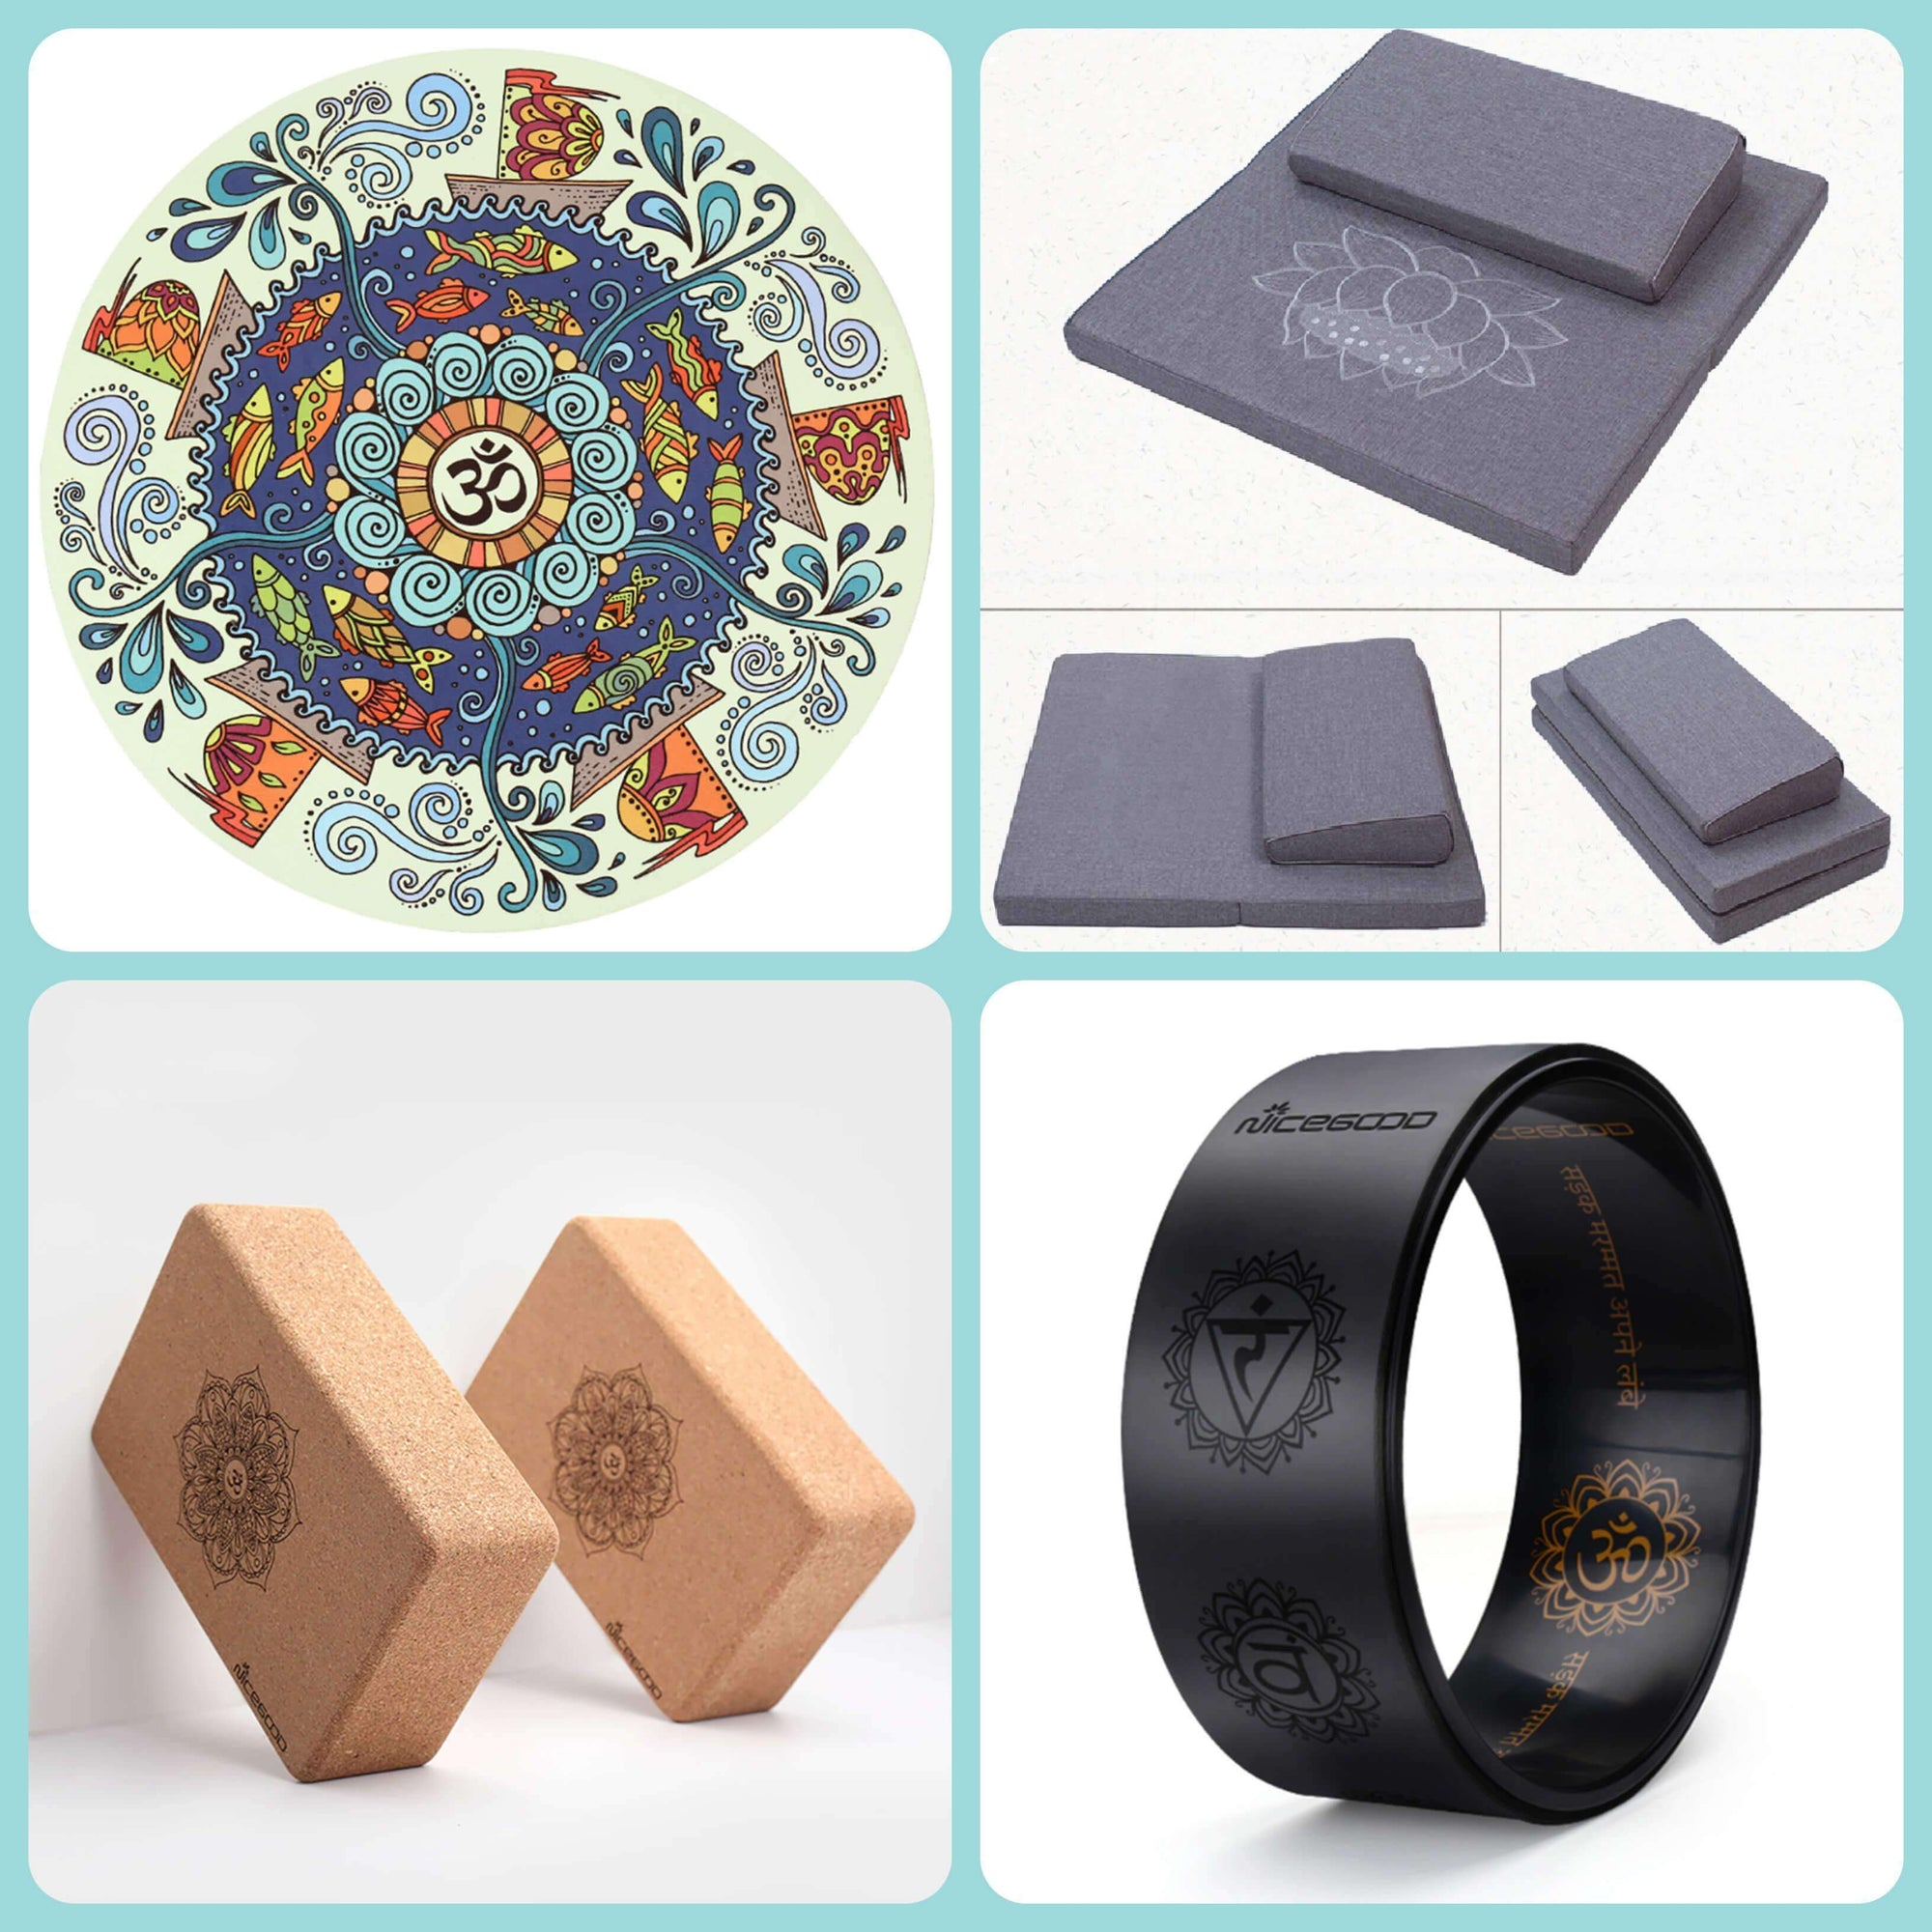 Yoga and meditation accessories